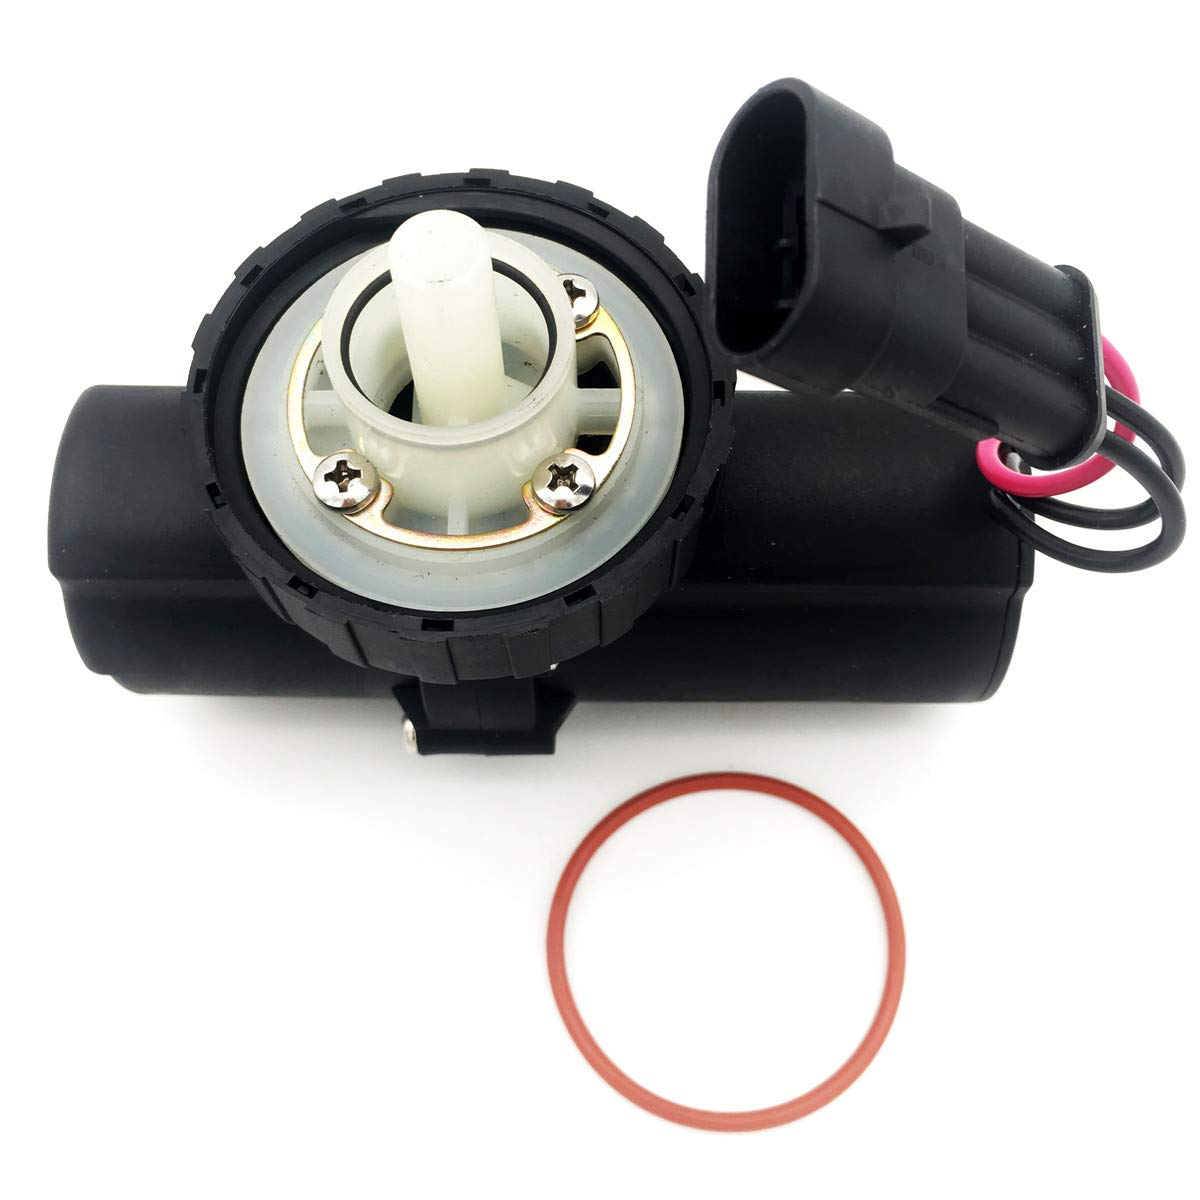 Electric Fuel Lift Pump Replacement for Ford New Holland 87802238 87802202 555E 5160S TS115 TS90 TB80 TS100 87802331 by spartshome